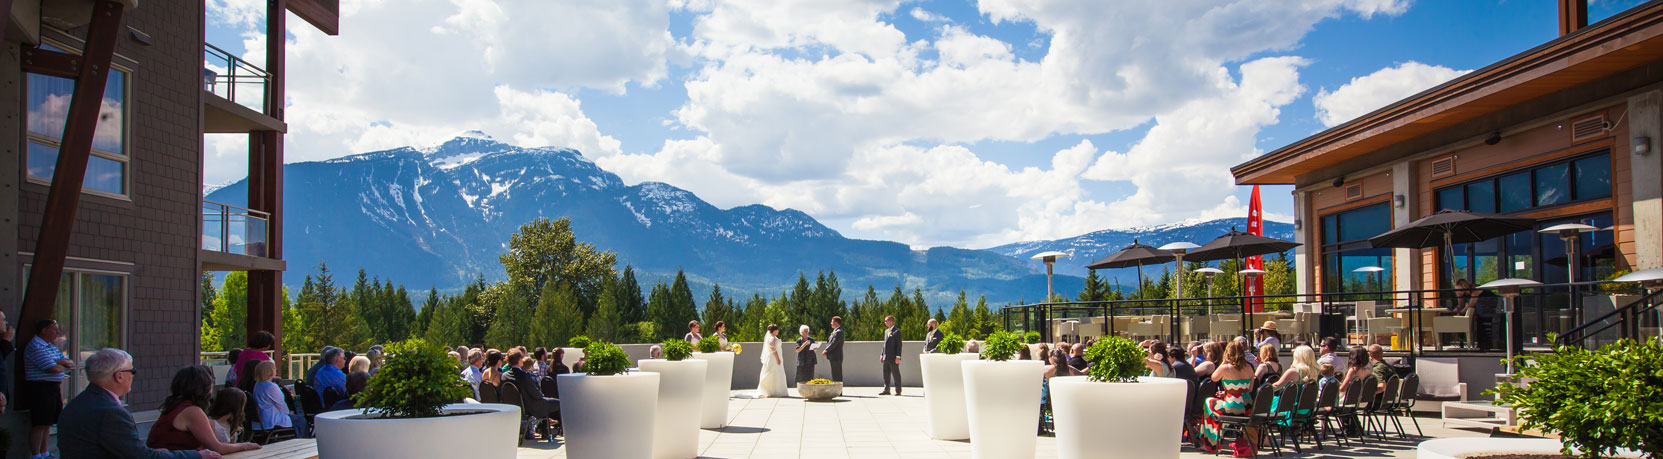 Book Weddings Events Revelstoke Mountain Resort British Columbia Canada